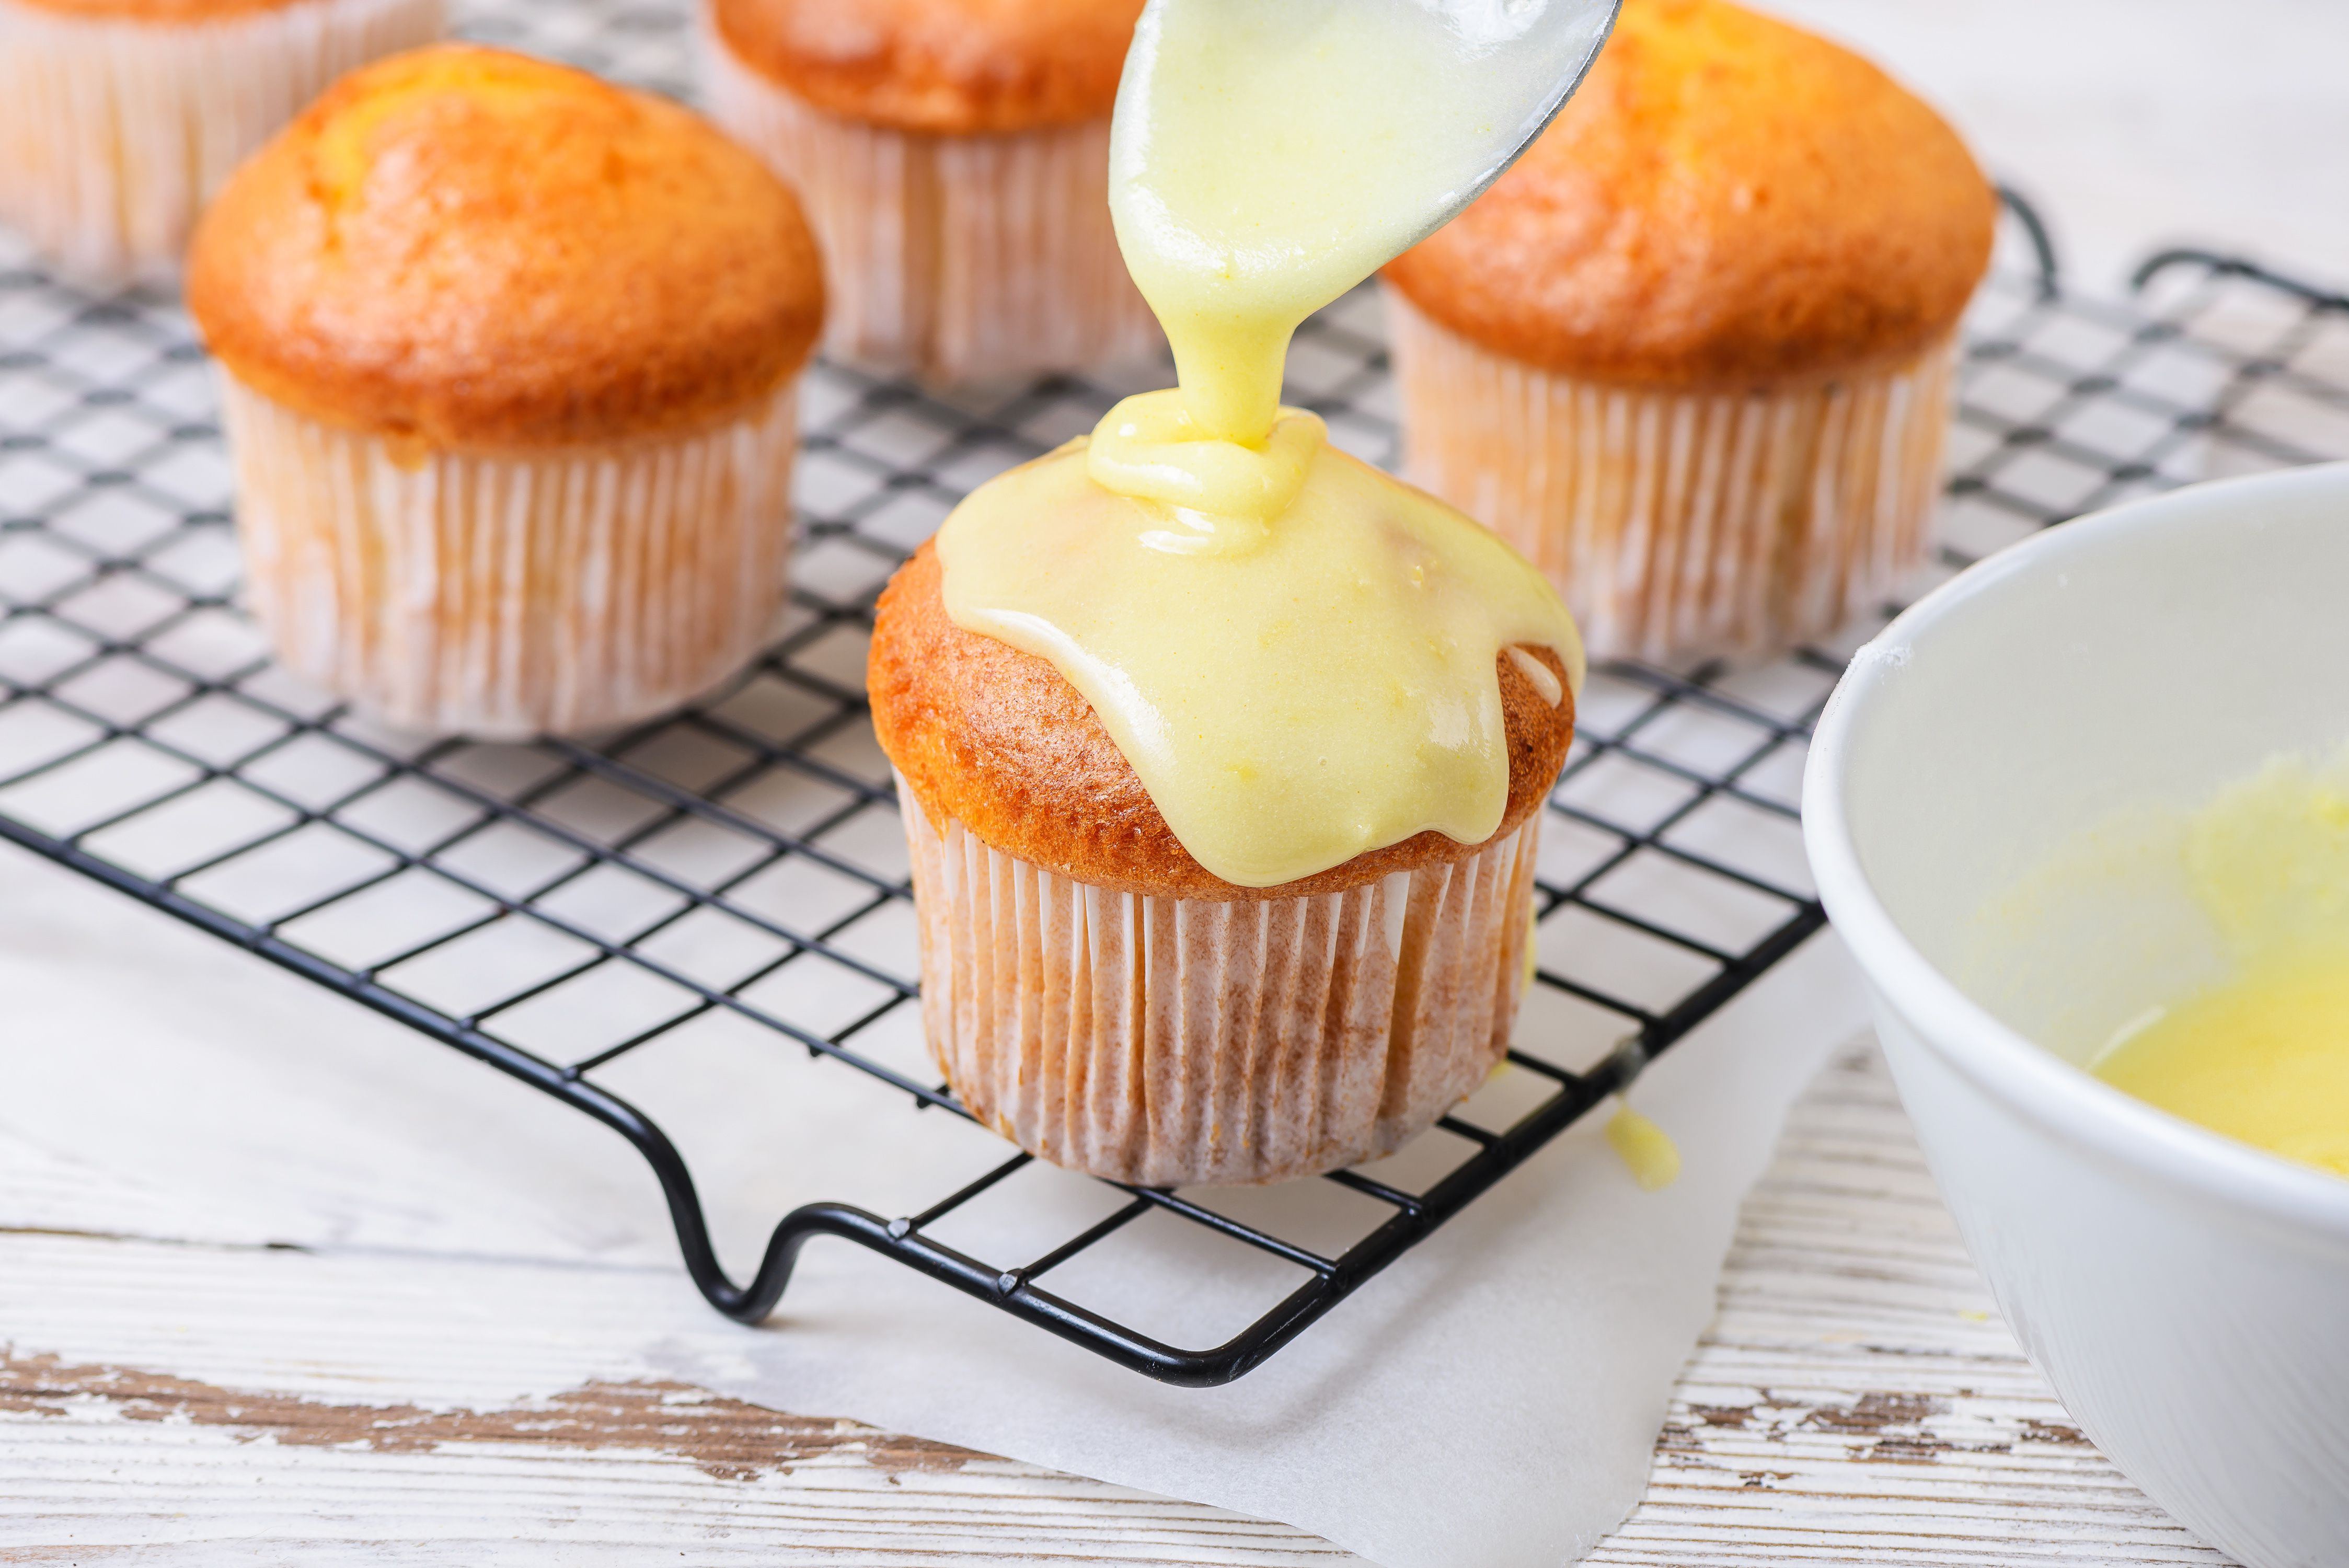 Lemon glaze icing drizzled on top of a cupcake